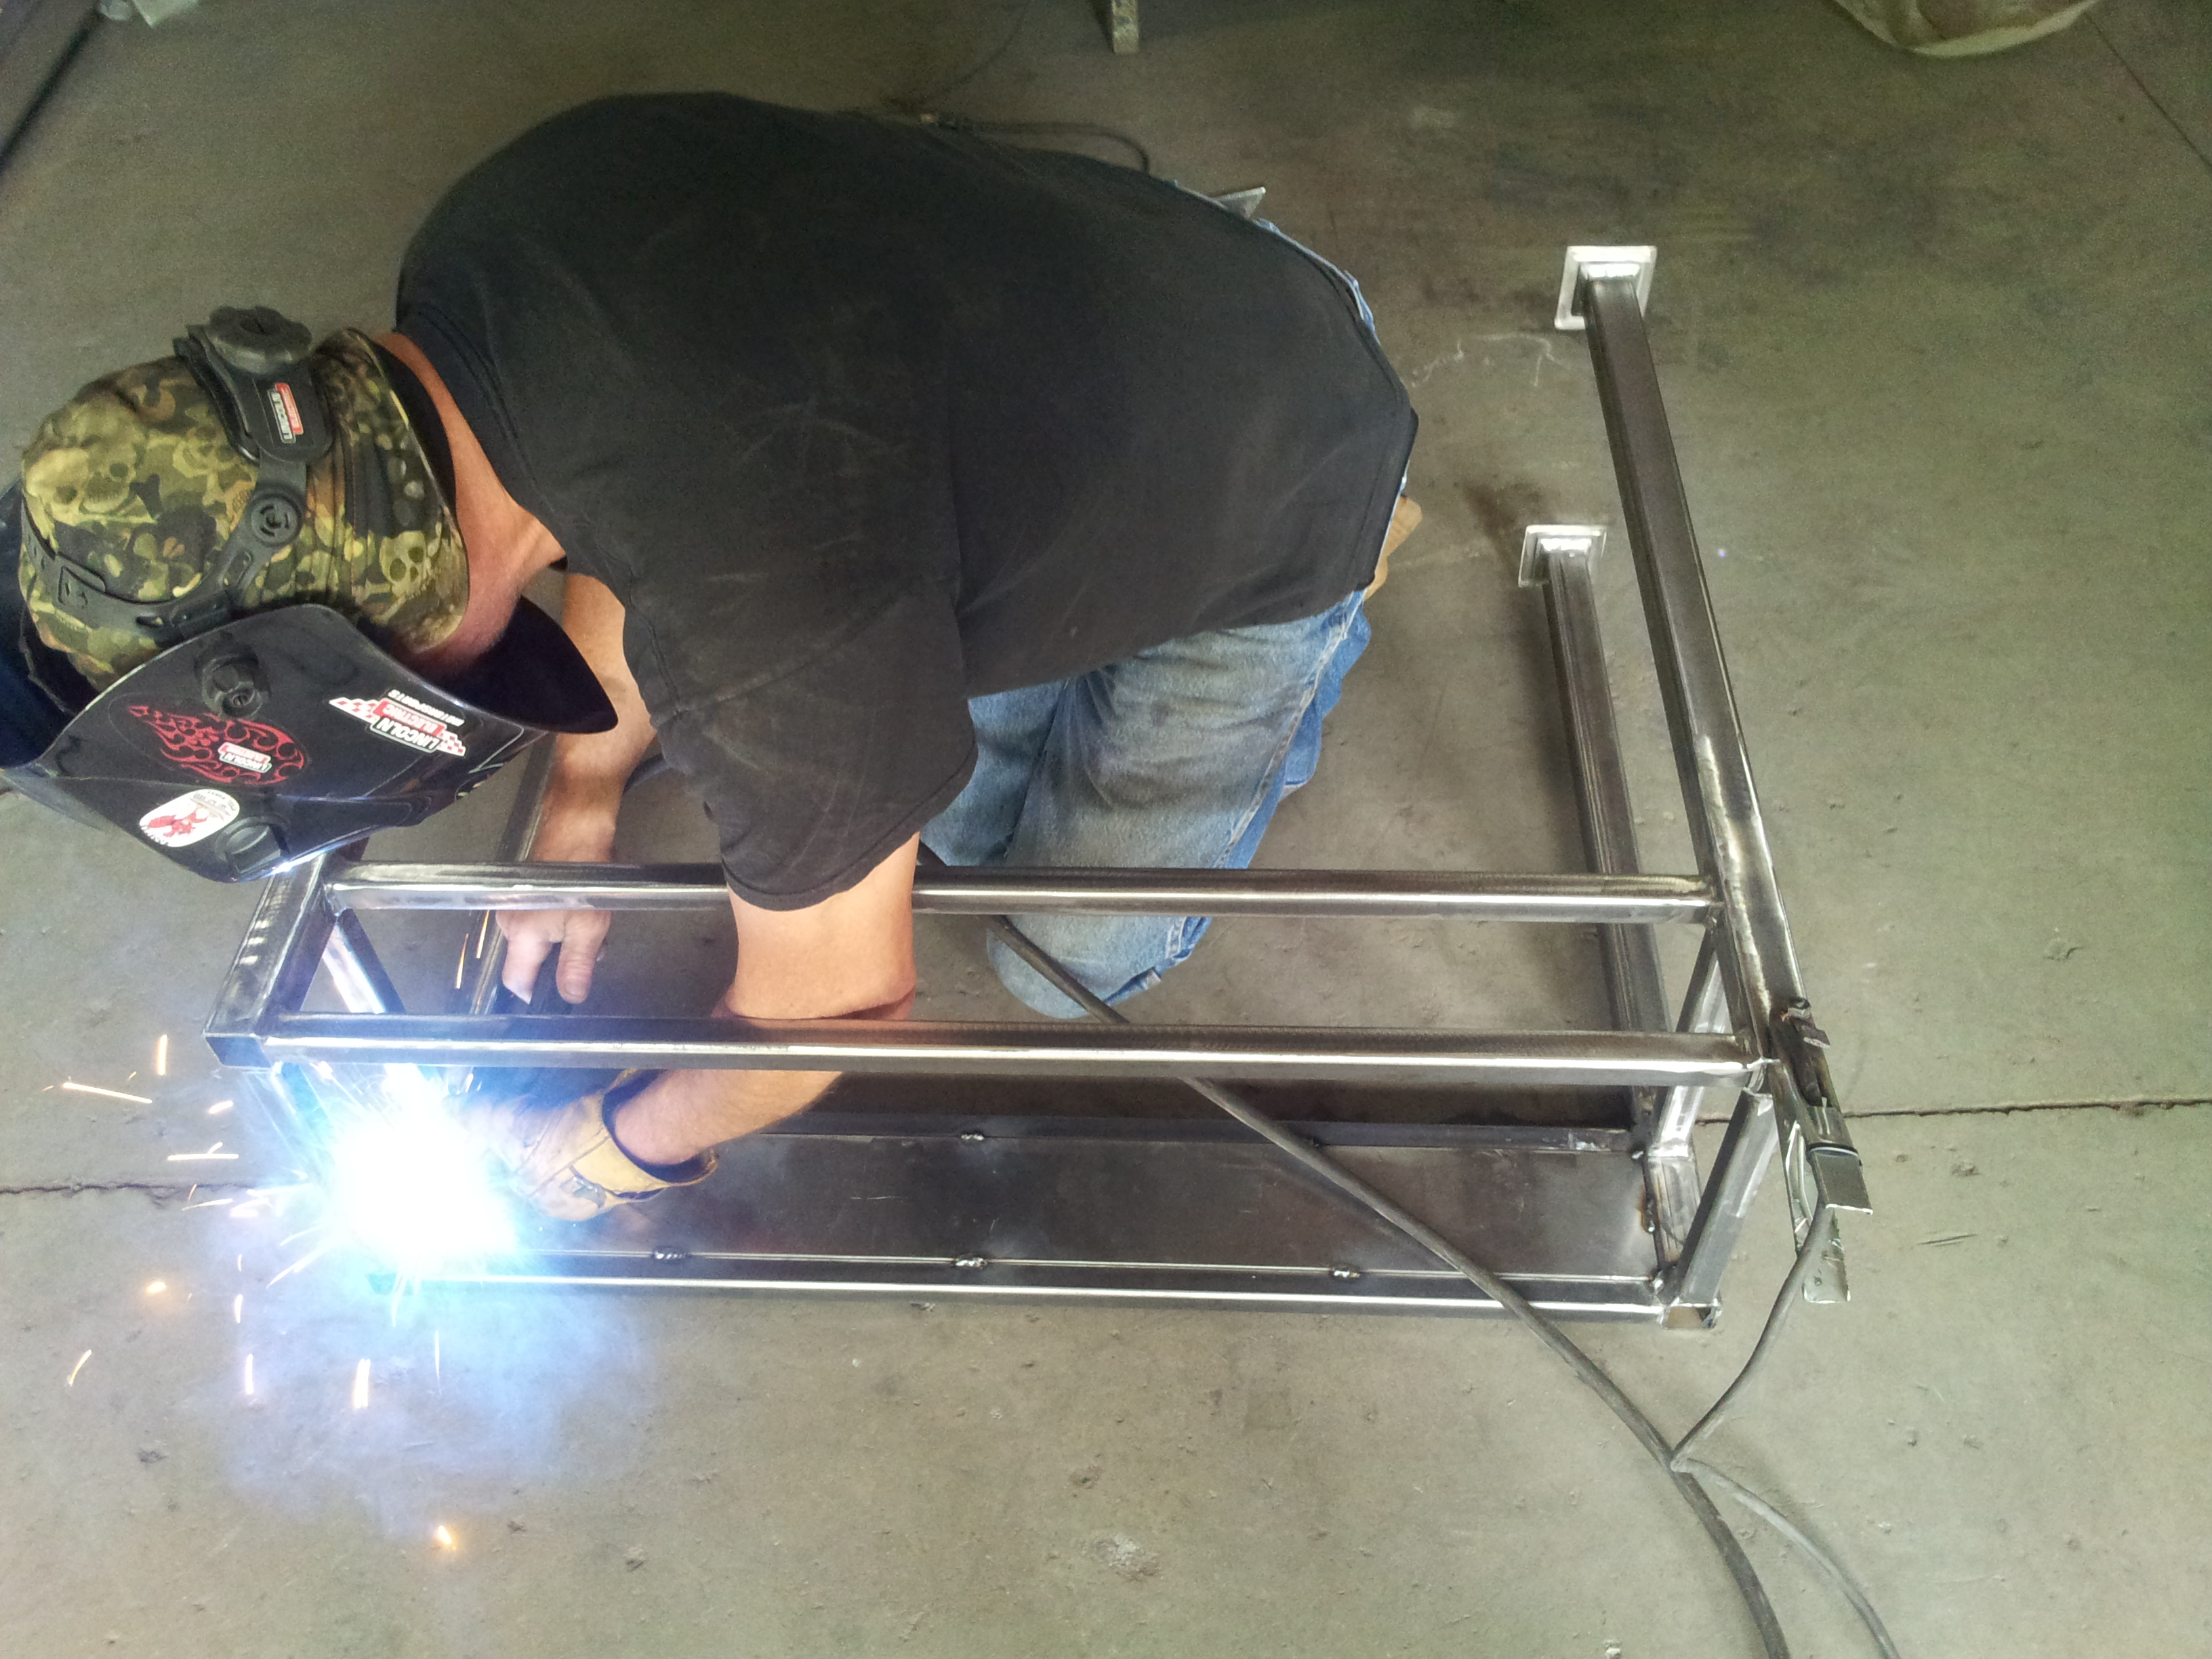 Lar welding the table frame